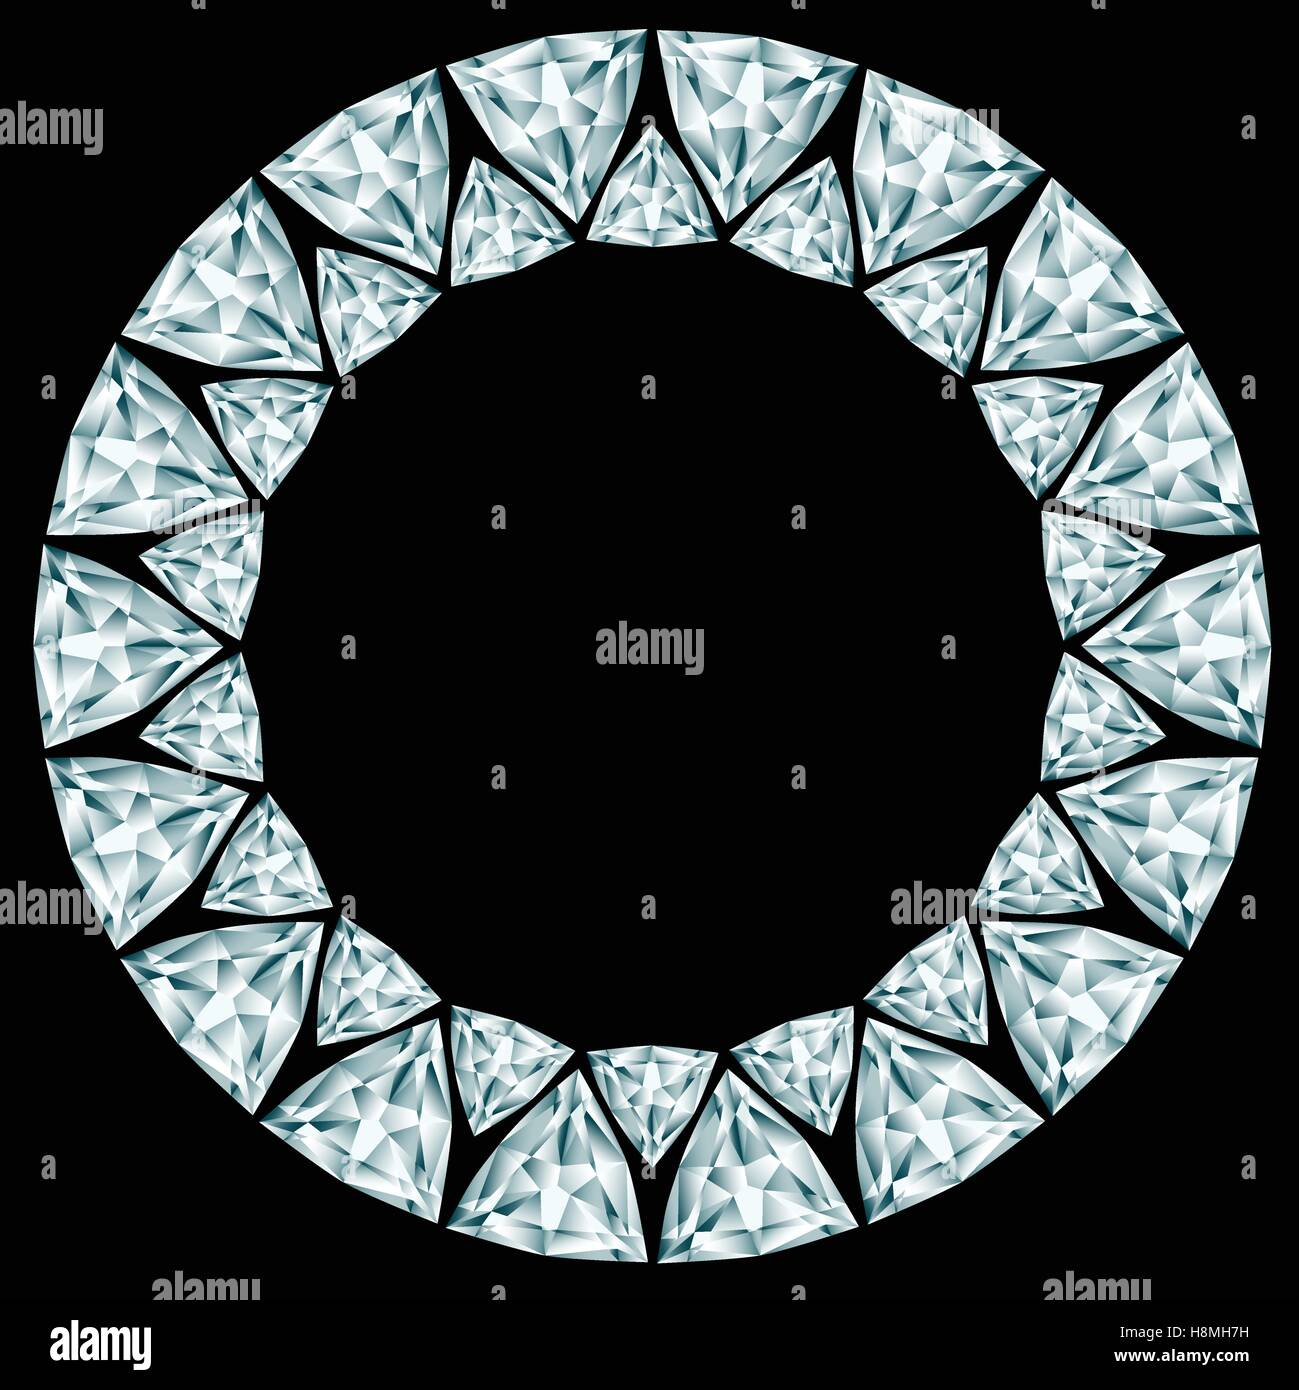 Diamond Frame Stockfotos & Diamond Frame Bilder - Alamy